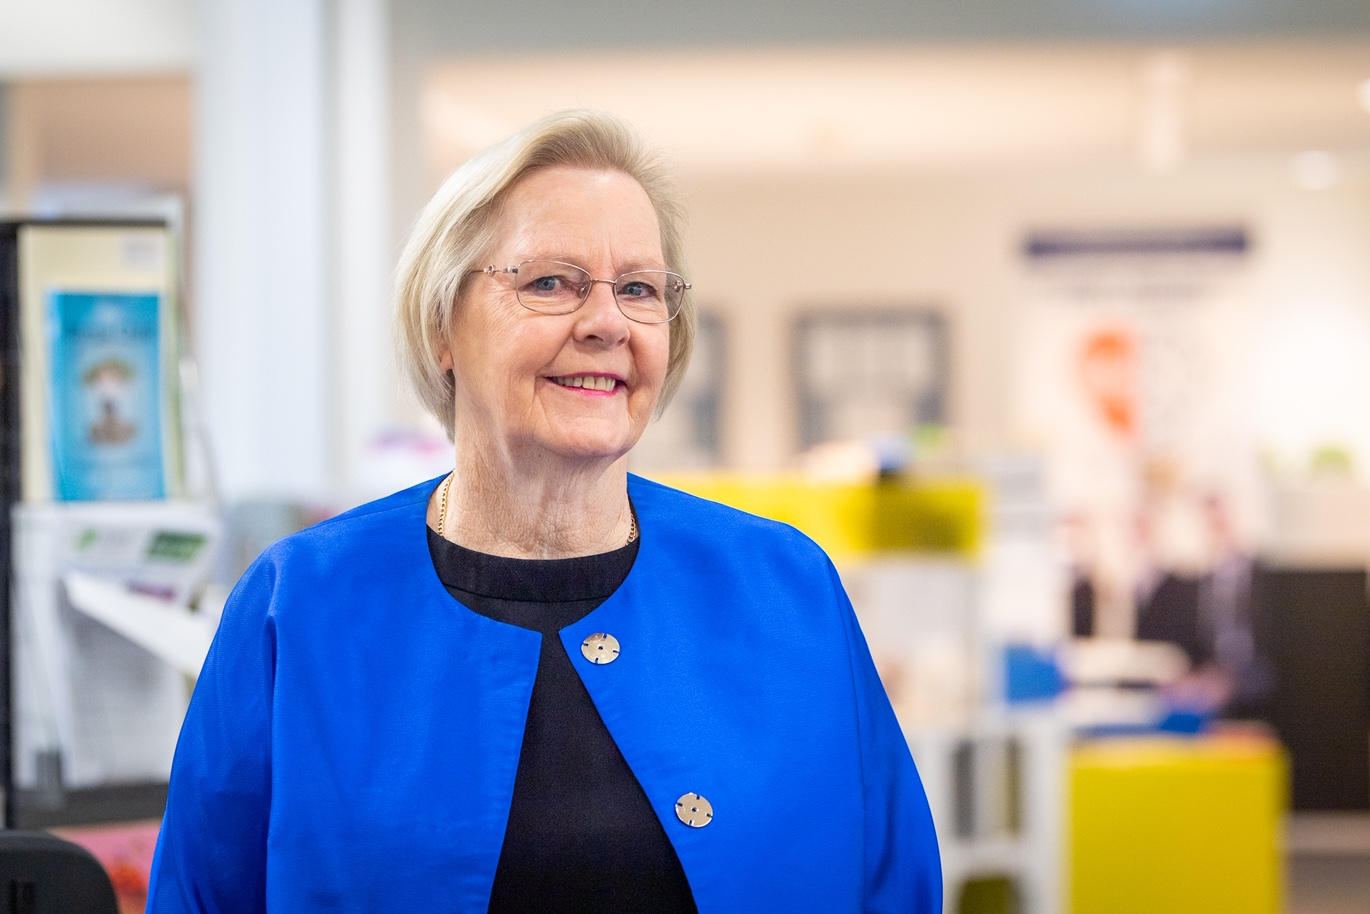 Sydney Catholic Schools' Director of Education and Research Dr Kate O'Brien